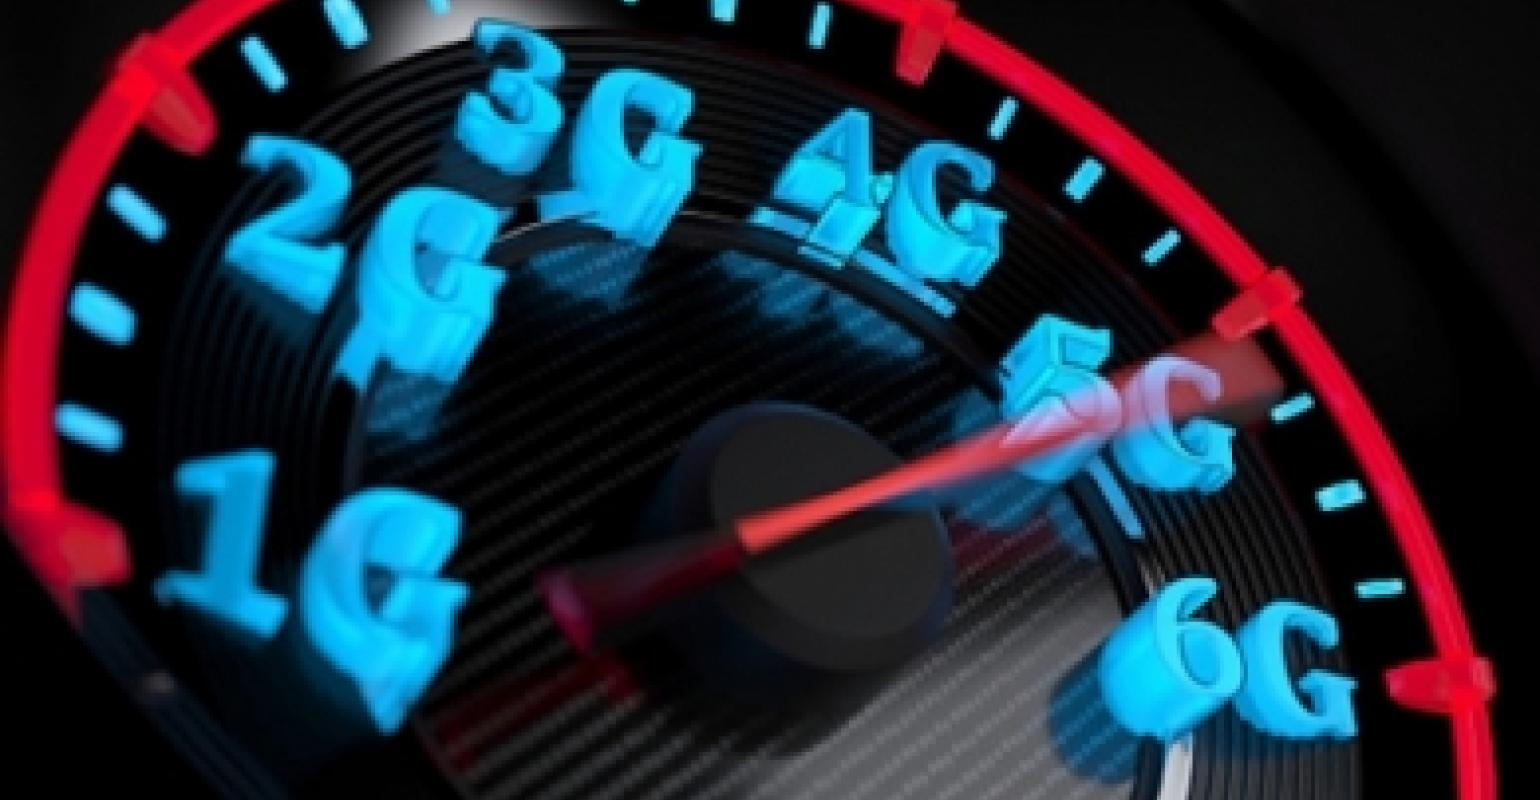 Intel, AT&T Move Forward with 5G Wireless Development   Data Center